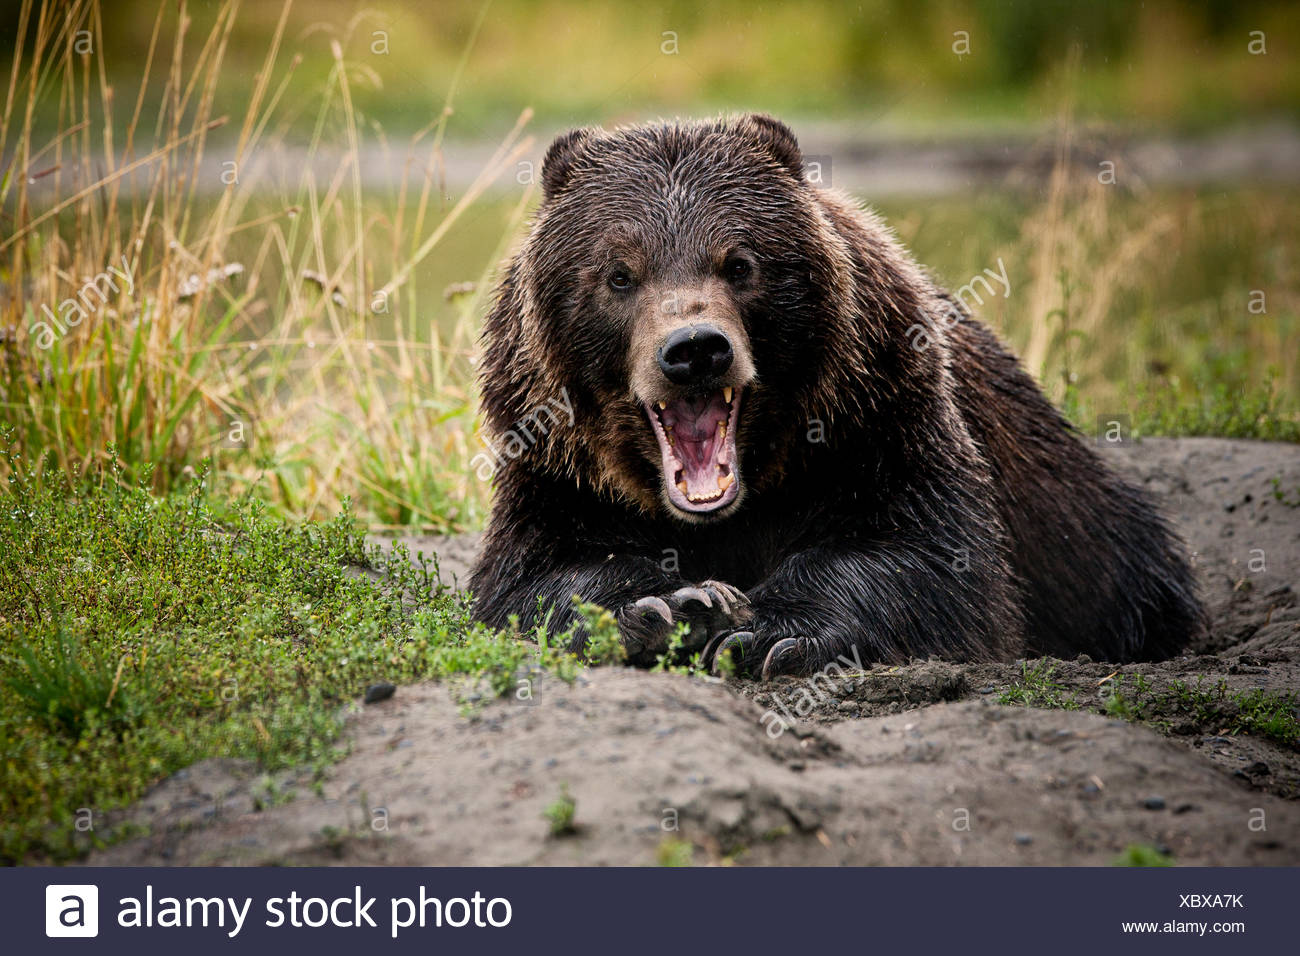 Grizzly Bear (Ursus arctos horribilis) with wide open jaws, threatening gesture, Valdez, Alaska, United States - Stock Image